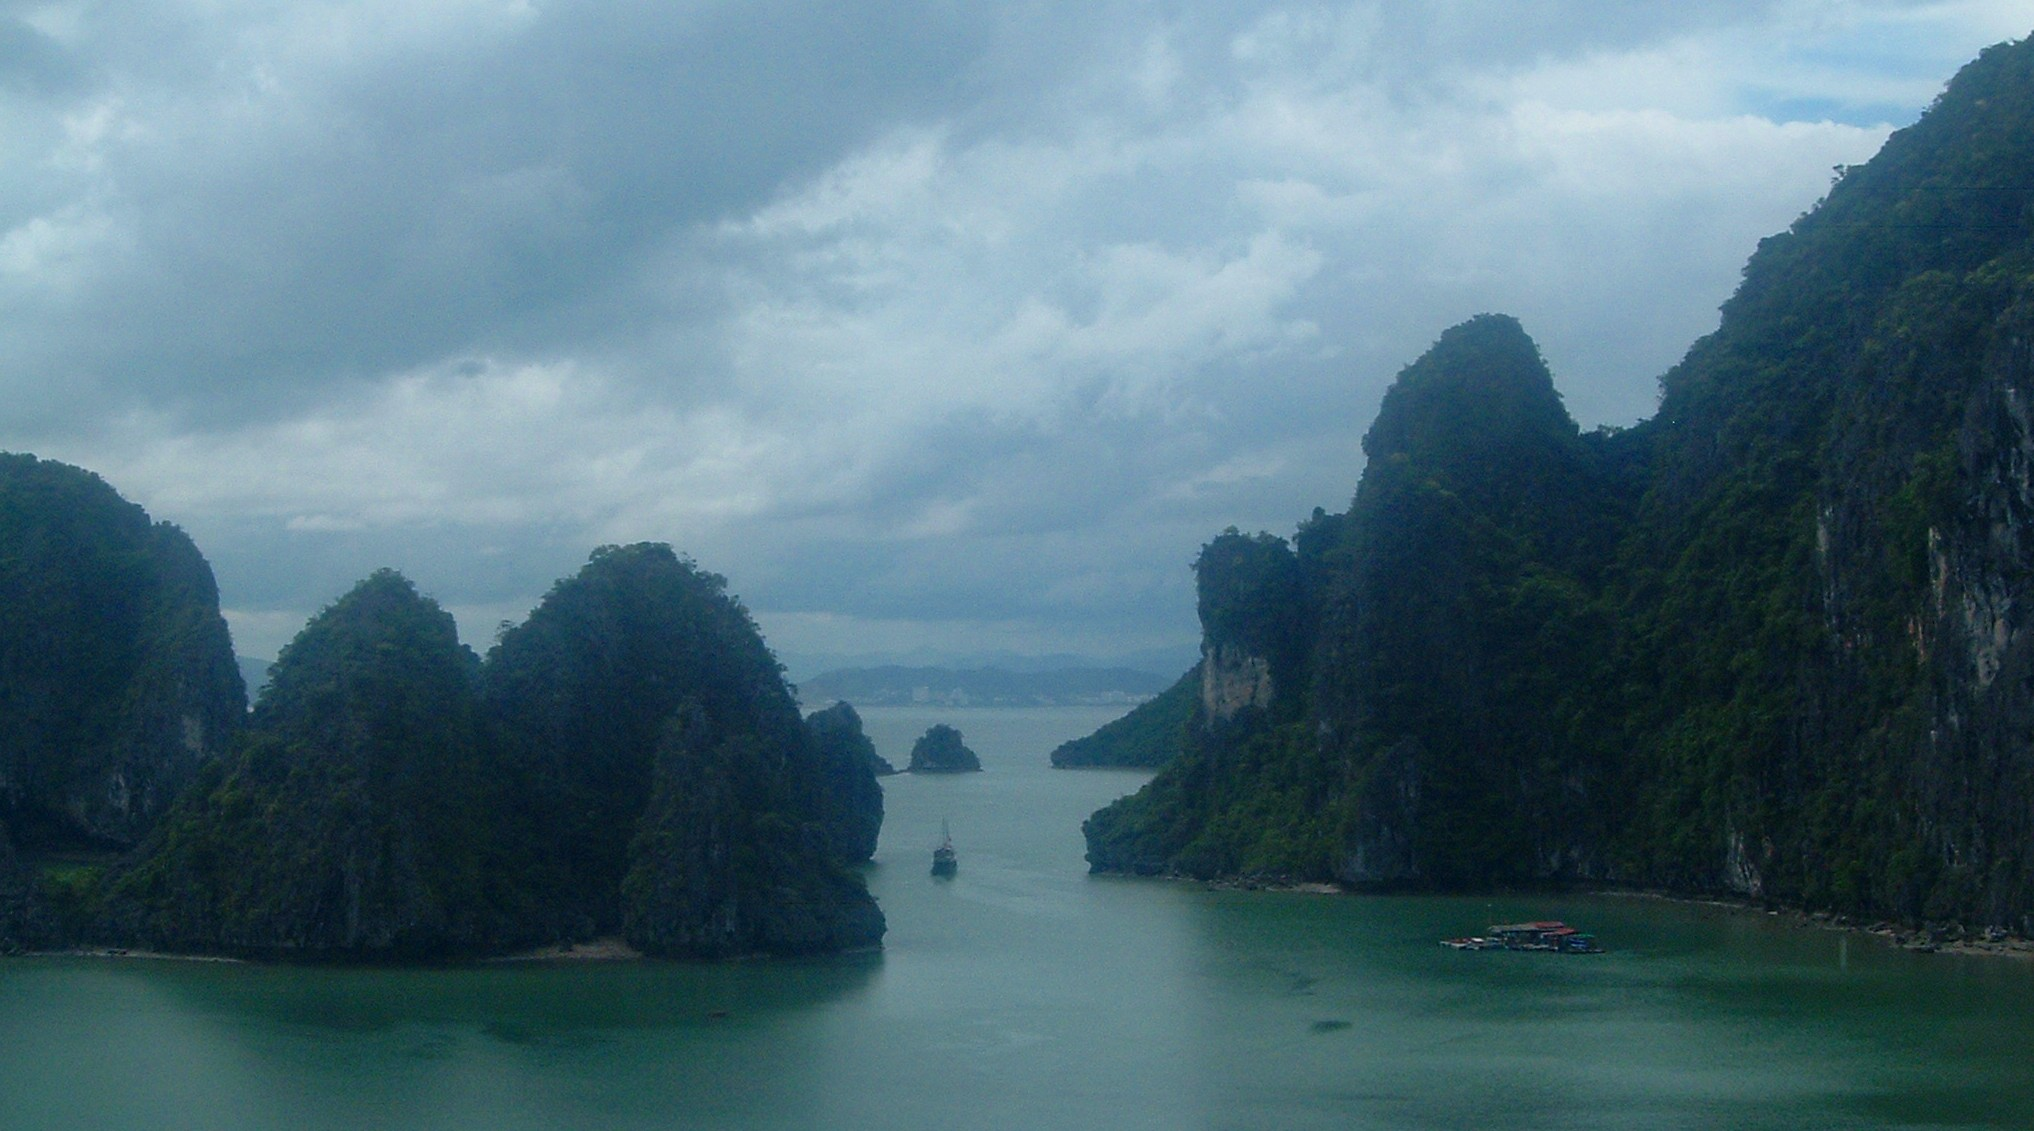 halong bay world heritage site.JPG